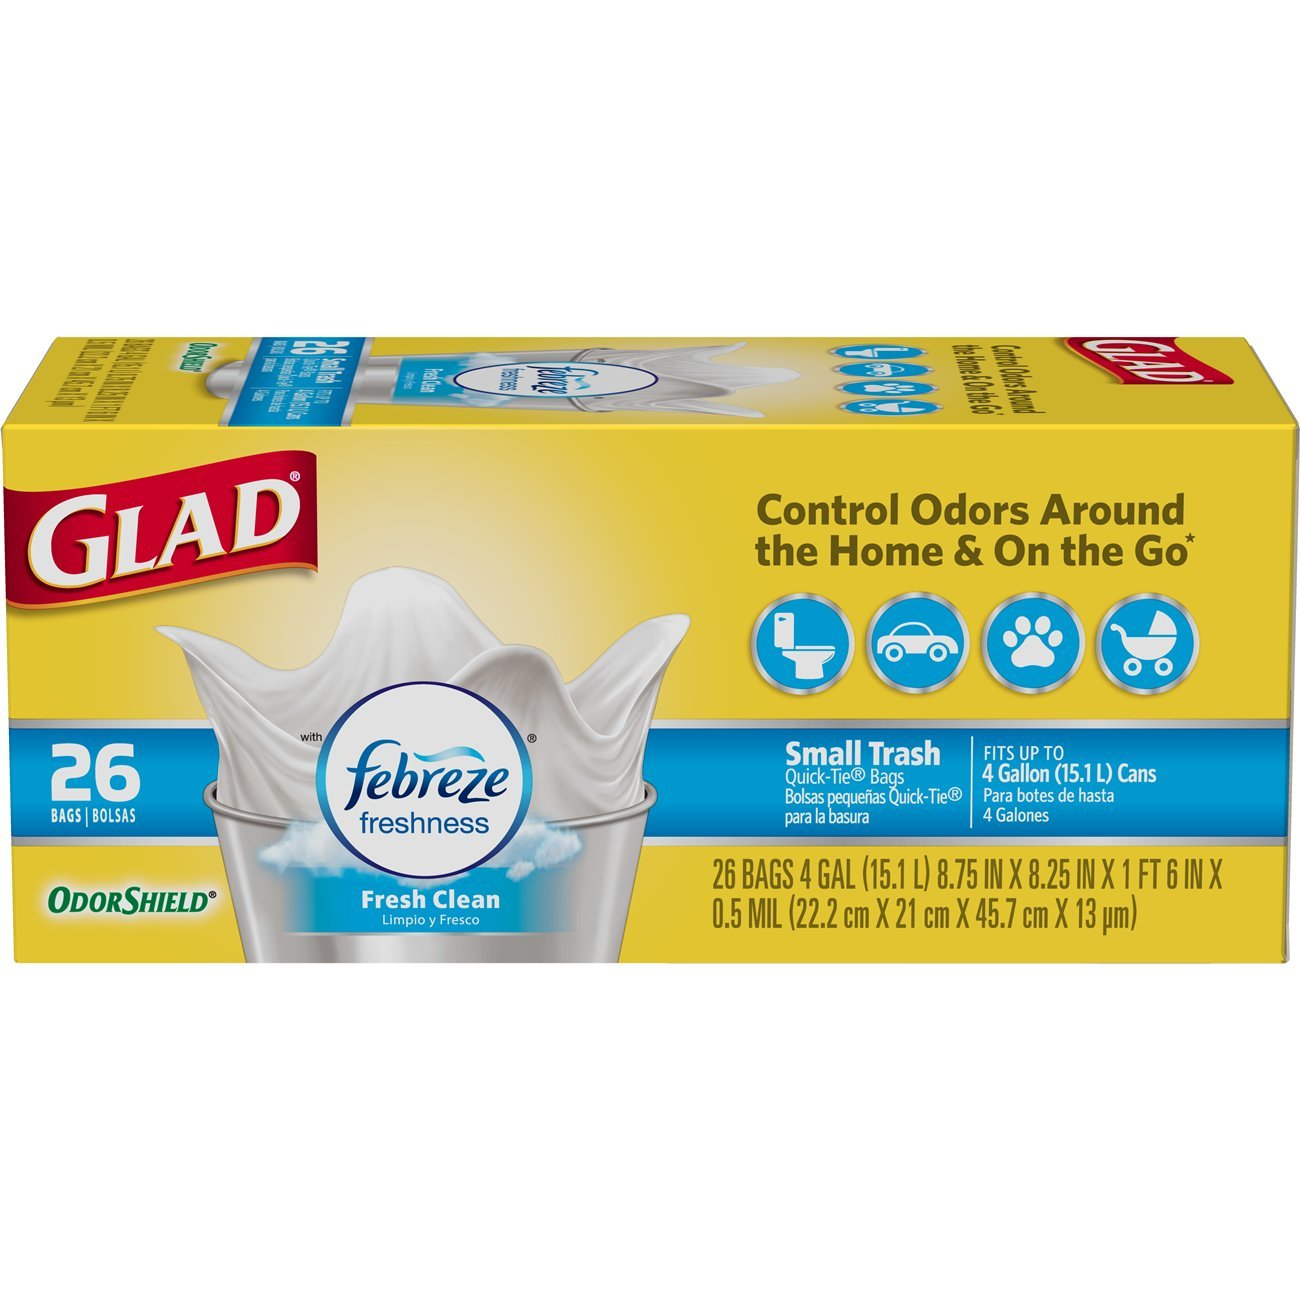 Glad OdorShield Small Trash Bags - Febreze Fresh Clean - 156 units (packaging may vary)